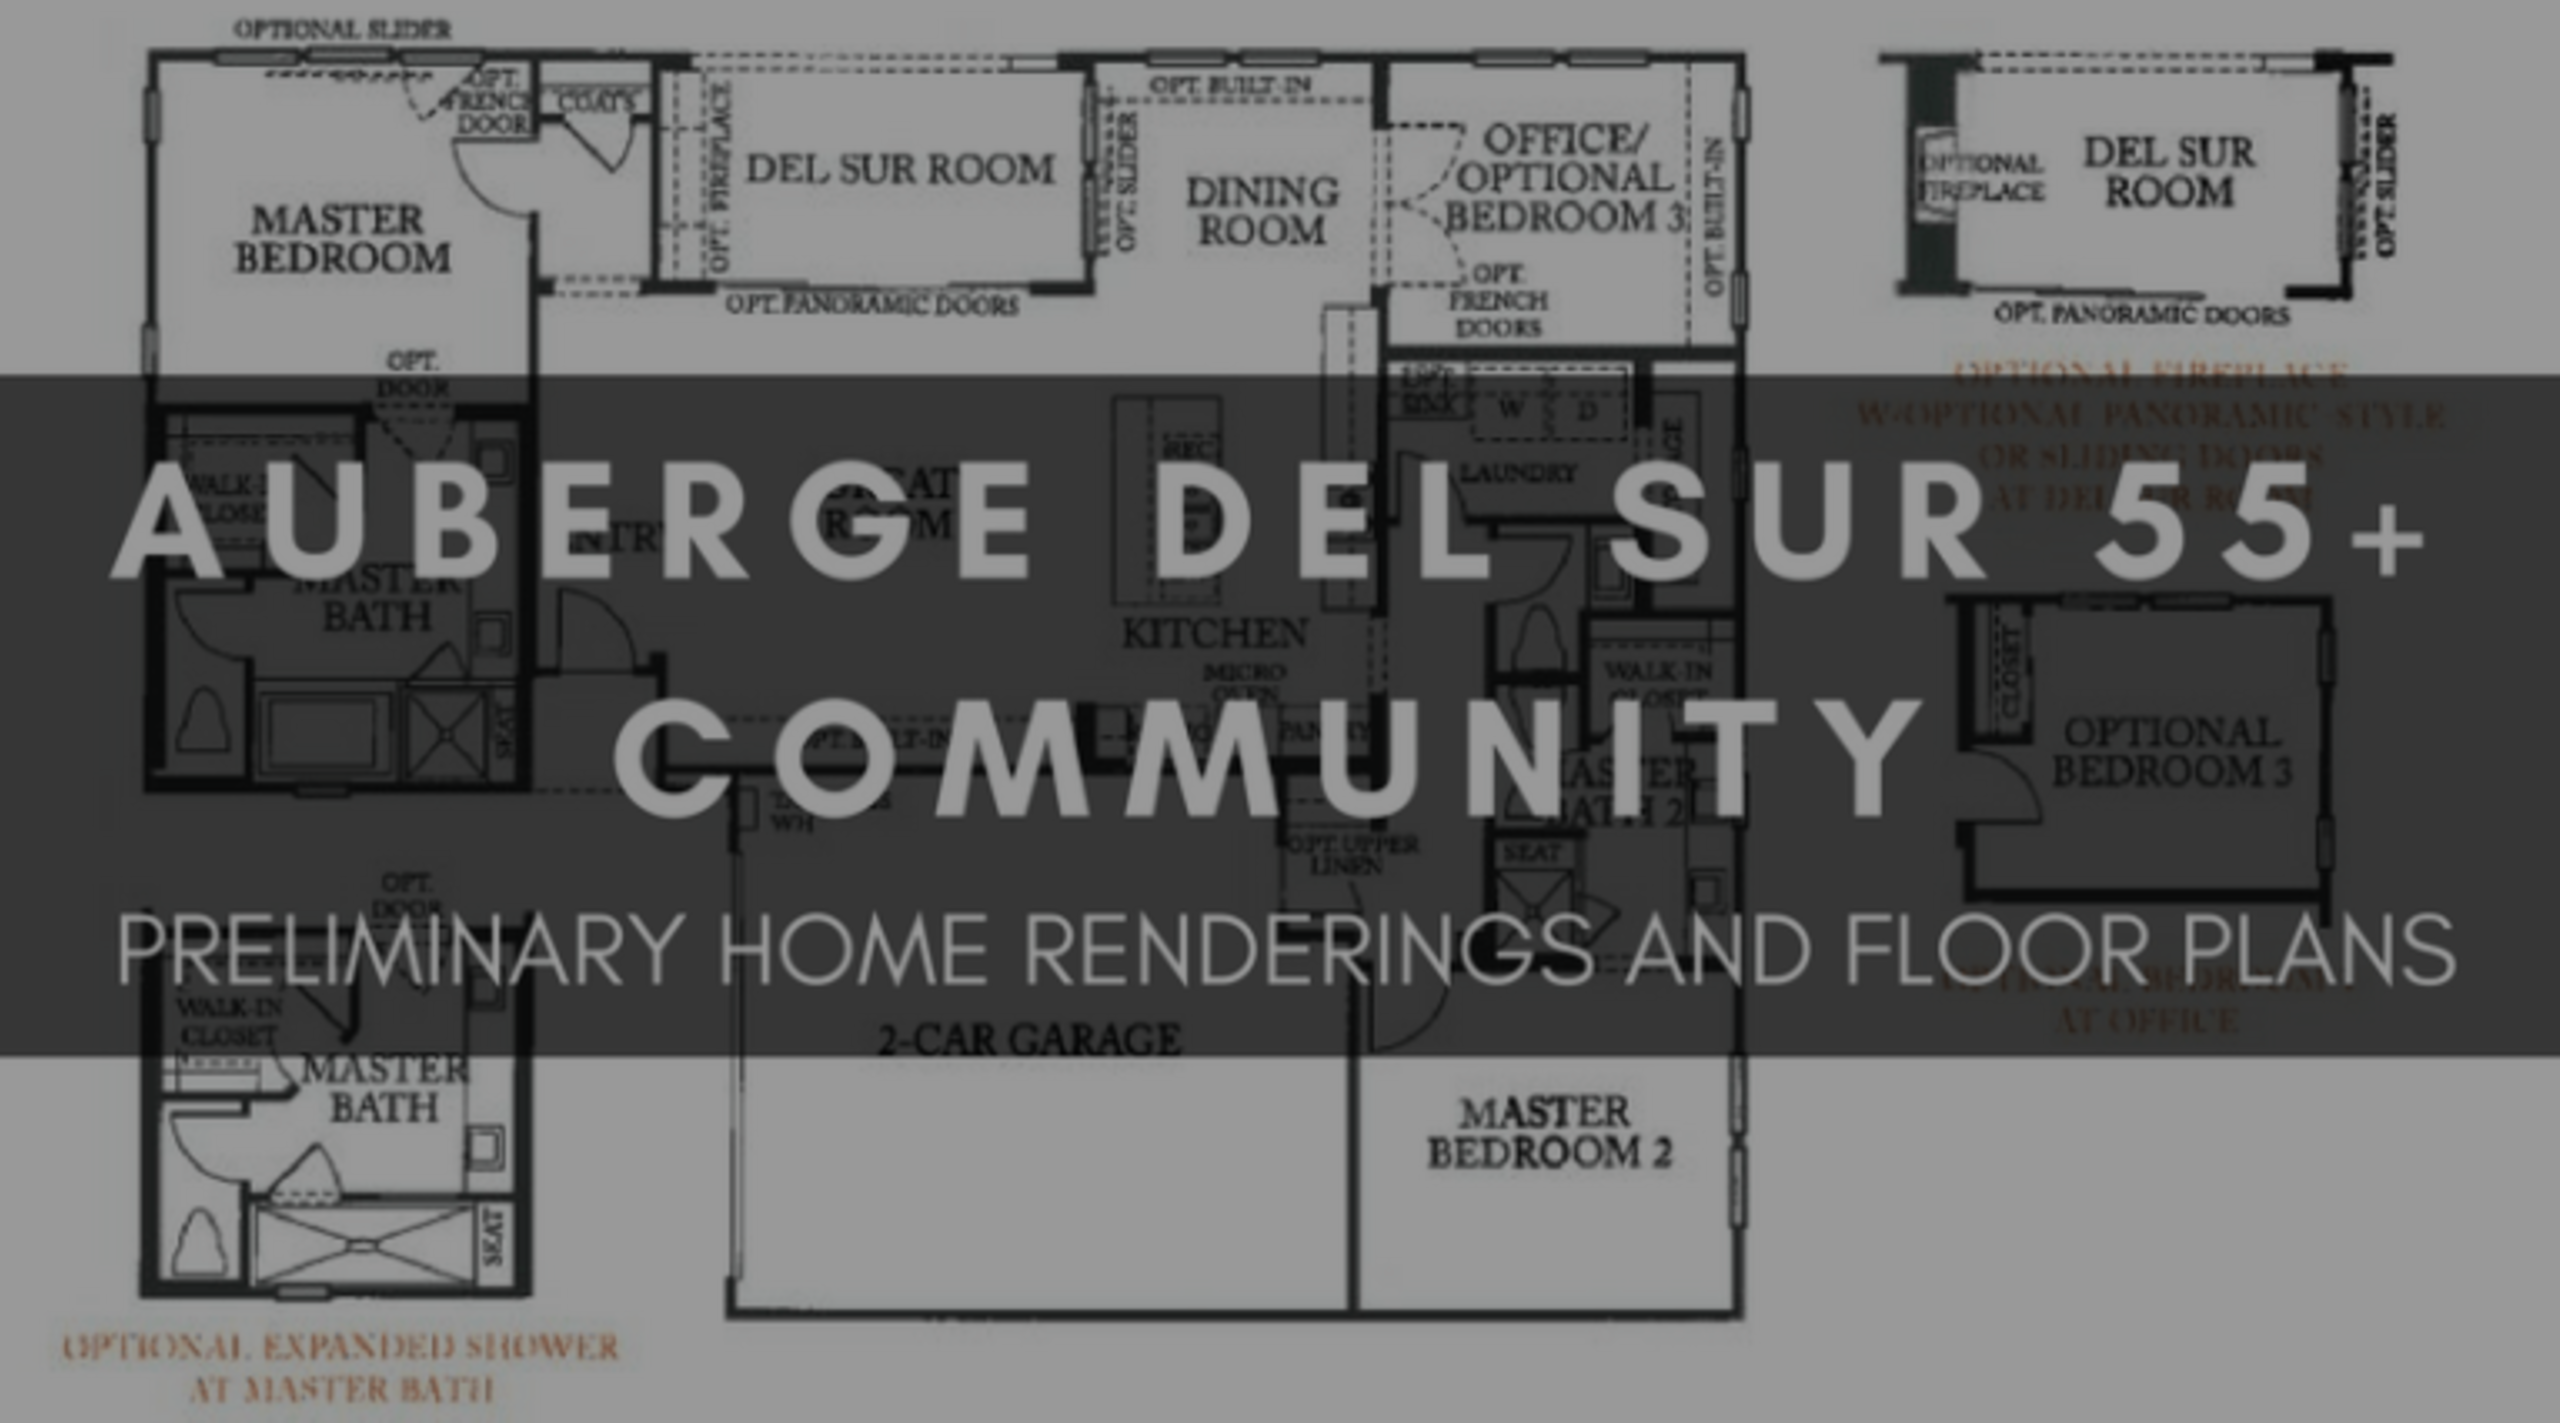 AUBERGE DEL SUR 55+ COMMUNITY | PRELIMINARY HOME RENDERINGS AND FLOOR PLANS